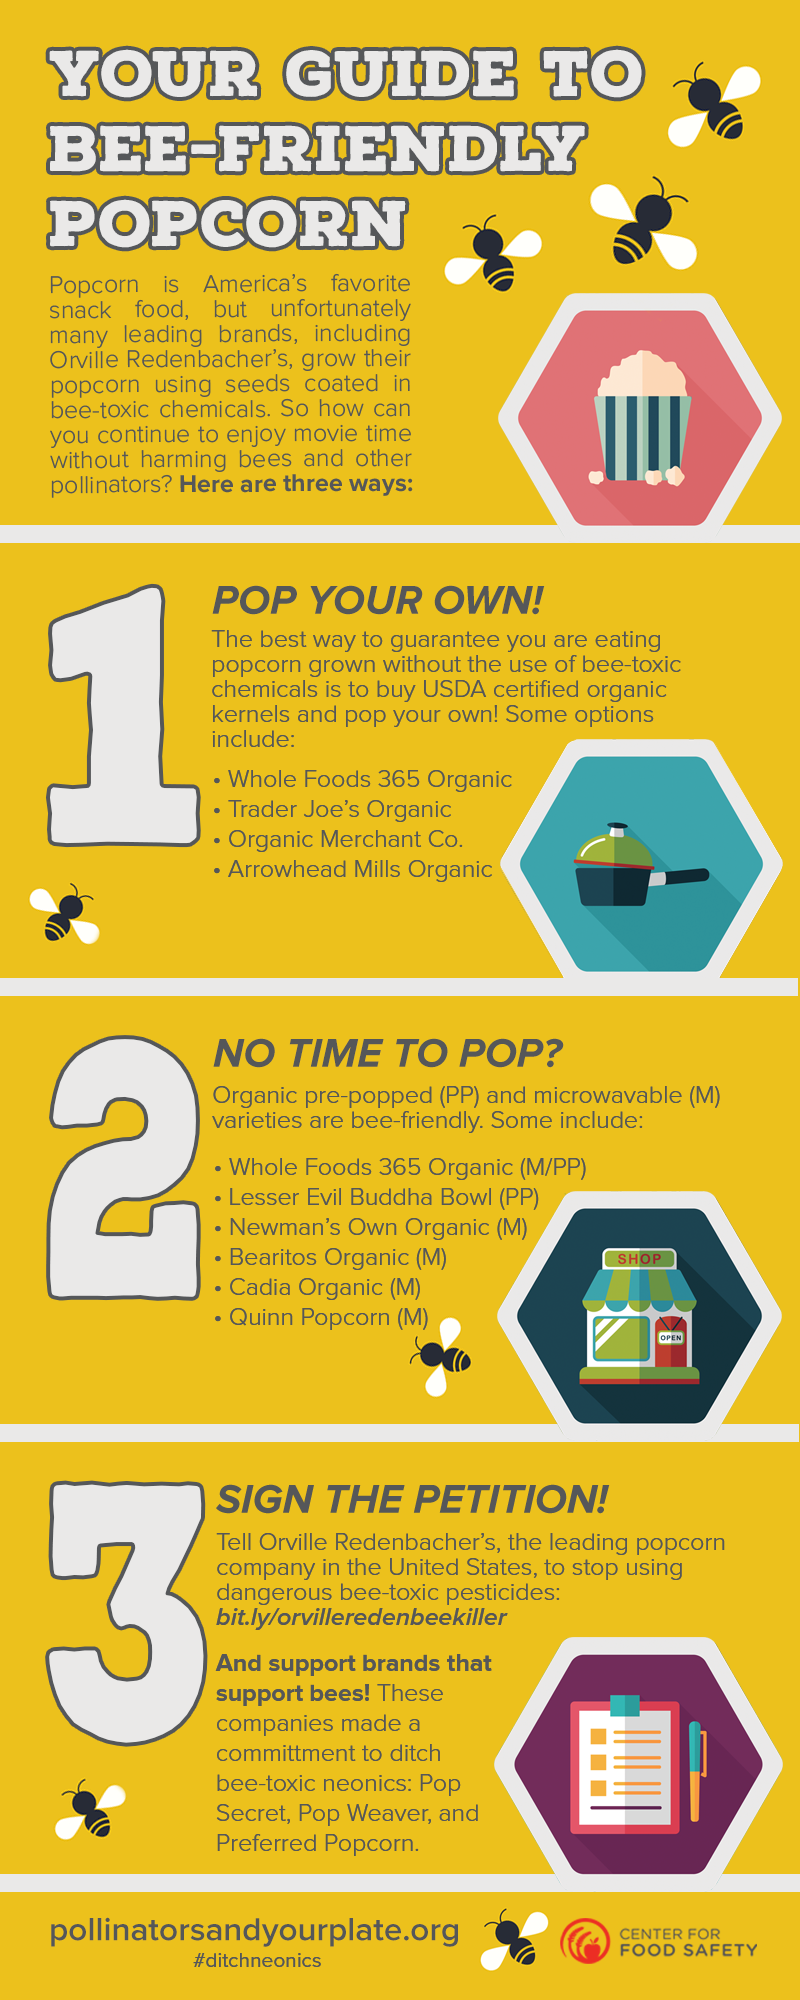 Your Guide to Bee-Friendly Popcorn Popcorn is America's favorite snack food, but unfortunately many leading brands, including Orville Redenbacher's, grow their popcorn using seeds coated in bee-toxic chemicals. So how can you continue to enjoy movie time without harming bees and other pollinators? Here are three ways: 1.	Pop Your Own! The best way to guarantee you are eating popcorn grown without the use of bee-toxic chemicals is to buy USDA certified organic kernels and pop your own! Some options include: Whole Foods 365 Organic Trader Joe's Organic Organic Merchant Co. Arrowhead Mills Organic  2.	No Time to Pop? Organic pre-popped (PP) and microwavable (M) varieties are bee-friendly. Some include: Whole Foods 365 Organic (M/PP) Lesser Evil Buddha Bowl (PP) Newman's Own Organic (M) Bearitos Organic (M) Cadia Organic (M)  3.	Sign the Petition!  Tell Orville Redenbacher's, the leading popcorn company in the United States, to stop using dangerous bee-toxic pesticides: bit.ly/orvilleredenbeekiller And support brands that support bees! These companies made a commitment to ditch bee-toxic neonics: Pop Secret & Pop Weaver Pollinatorsandyourplate.org #ditchneonics Created by Center for Food safety